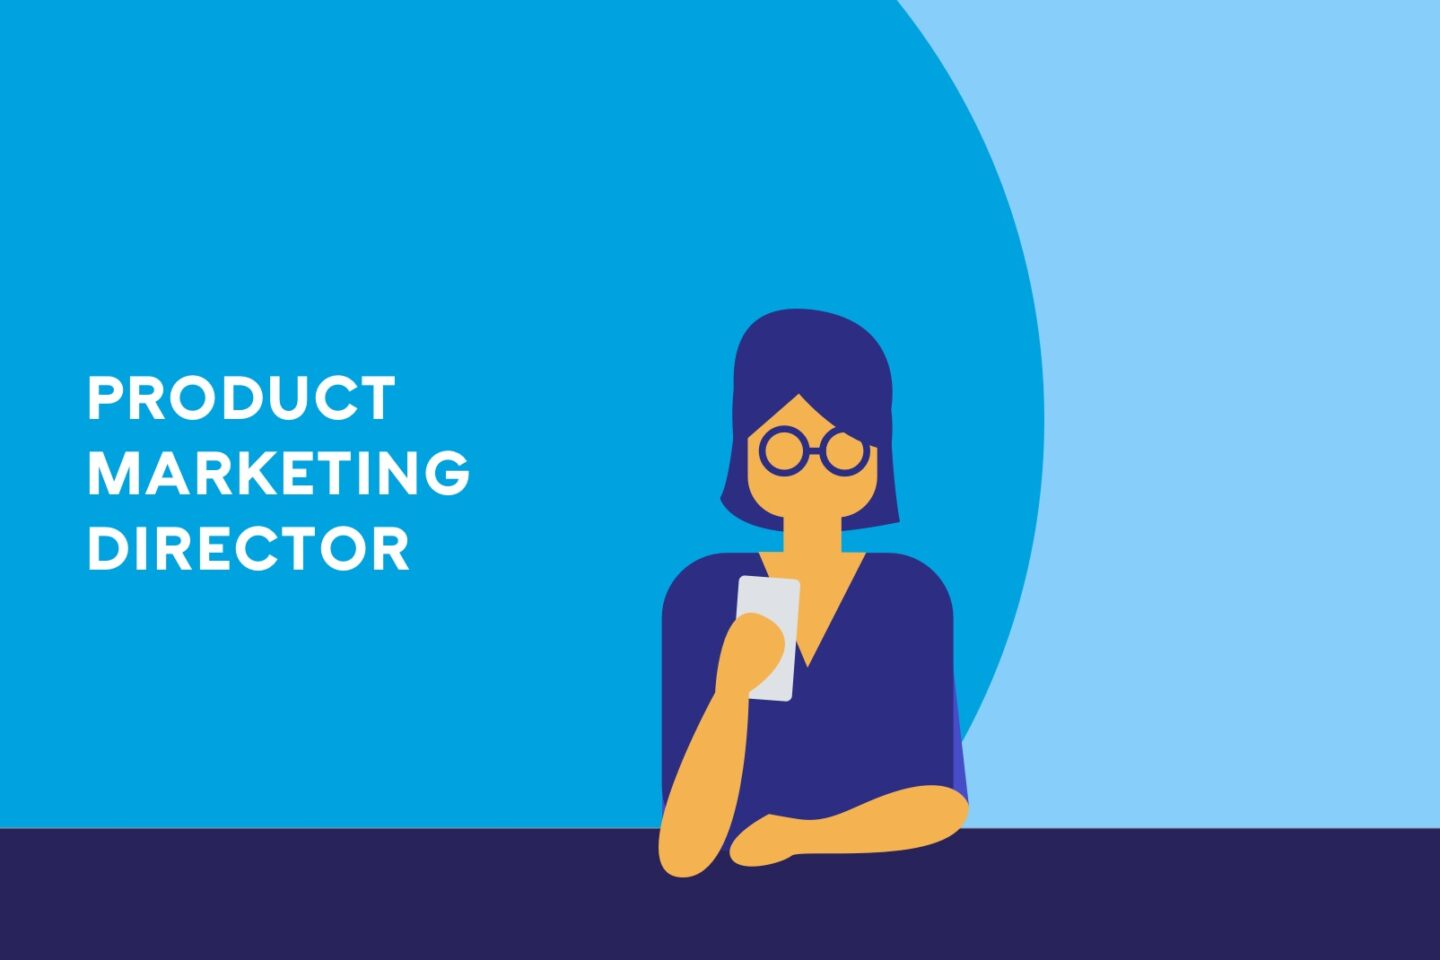 Sales enablement ROI for the product marketing director